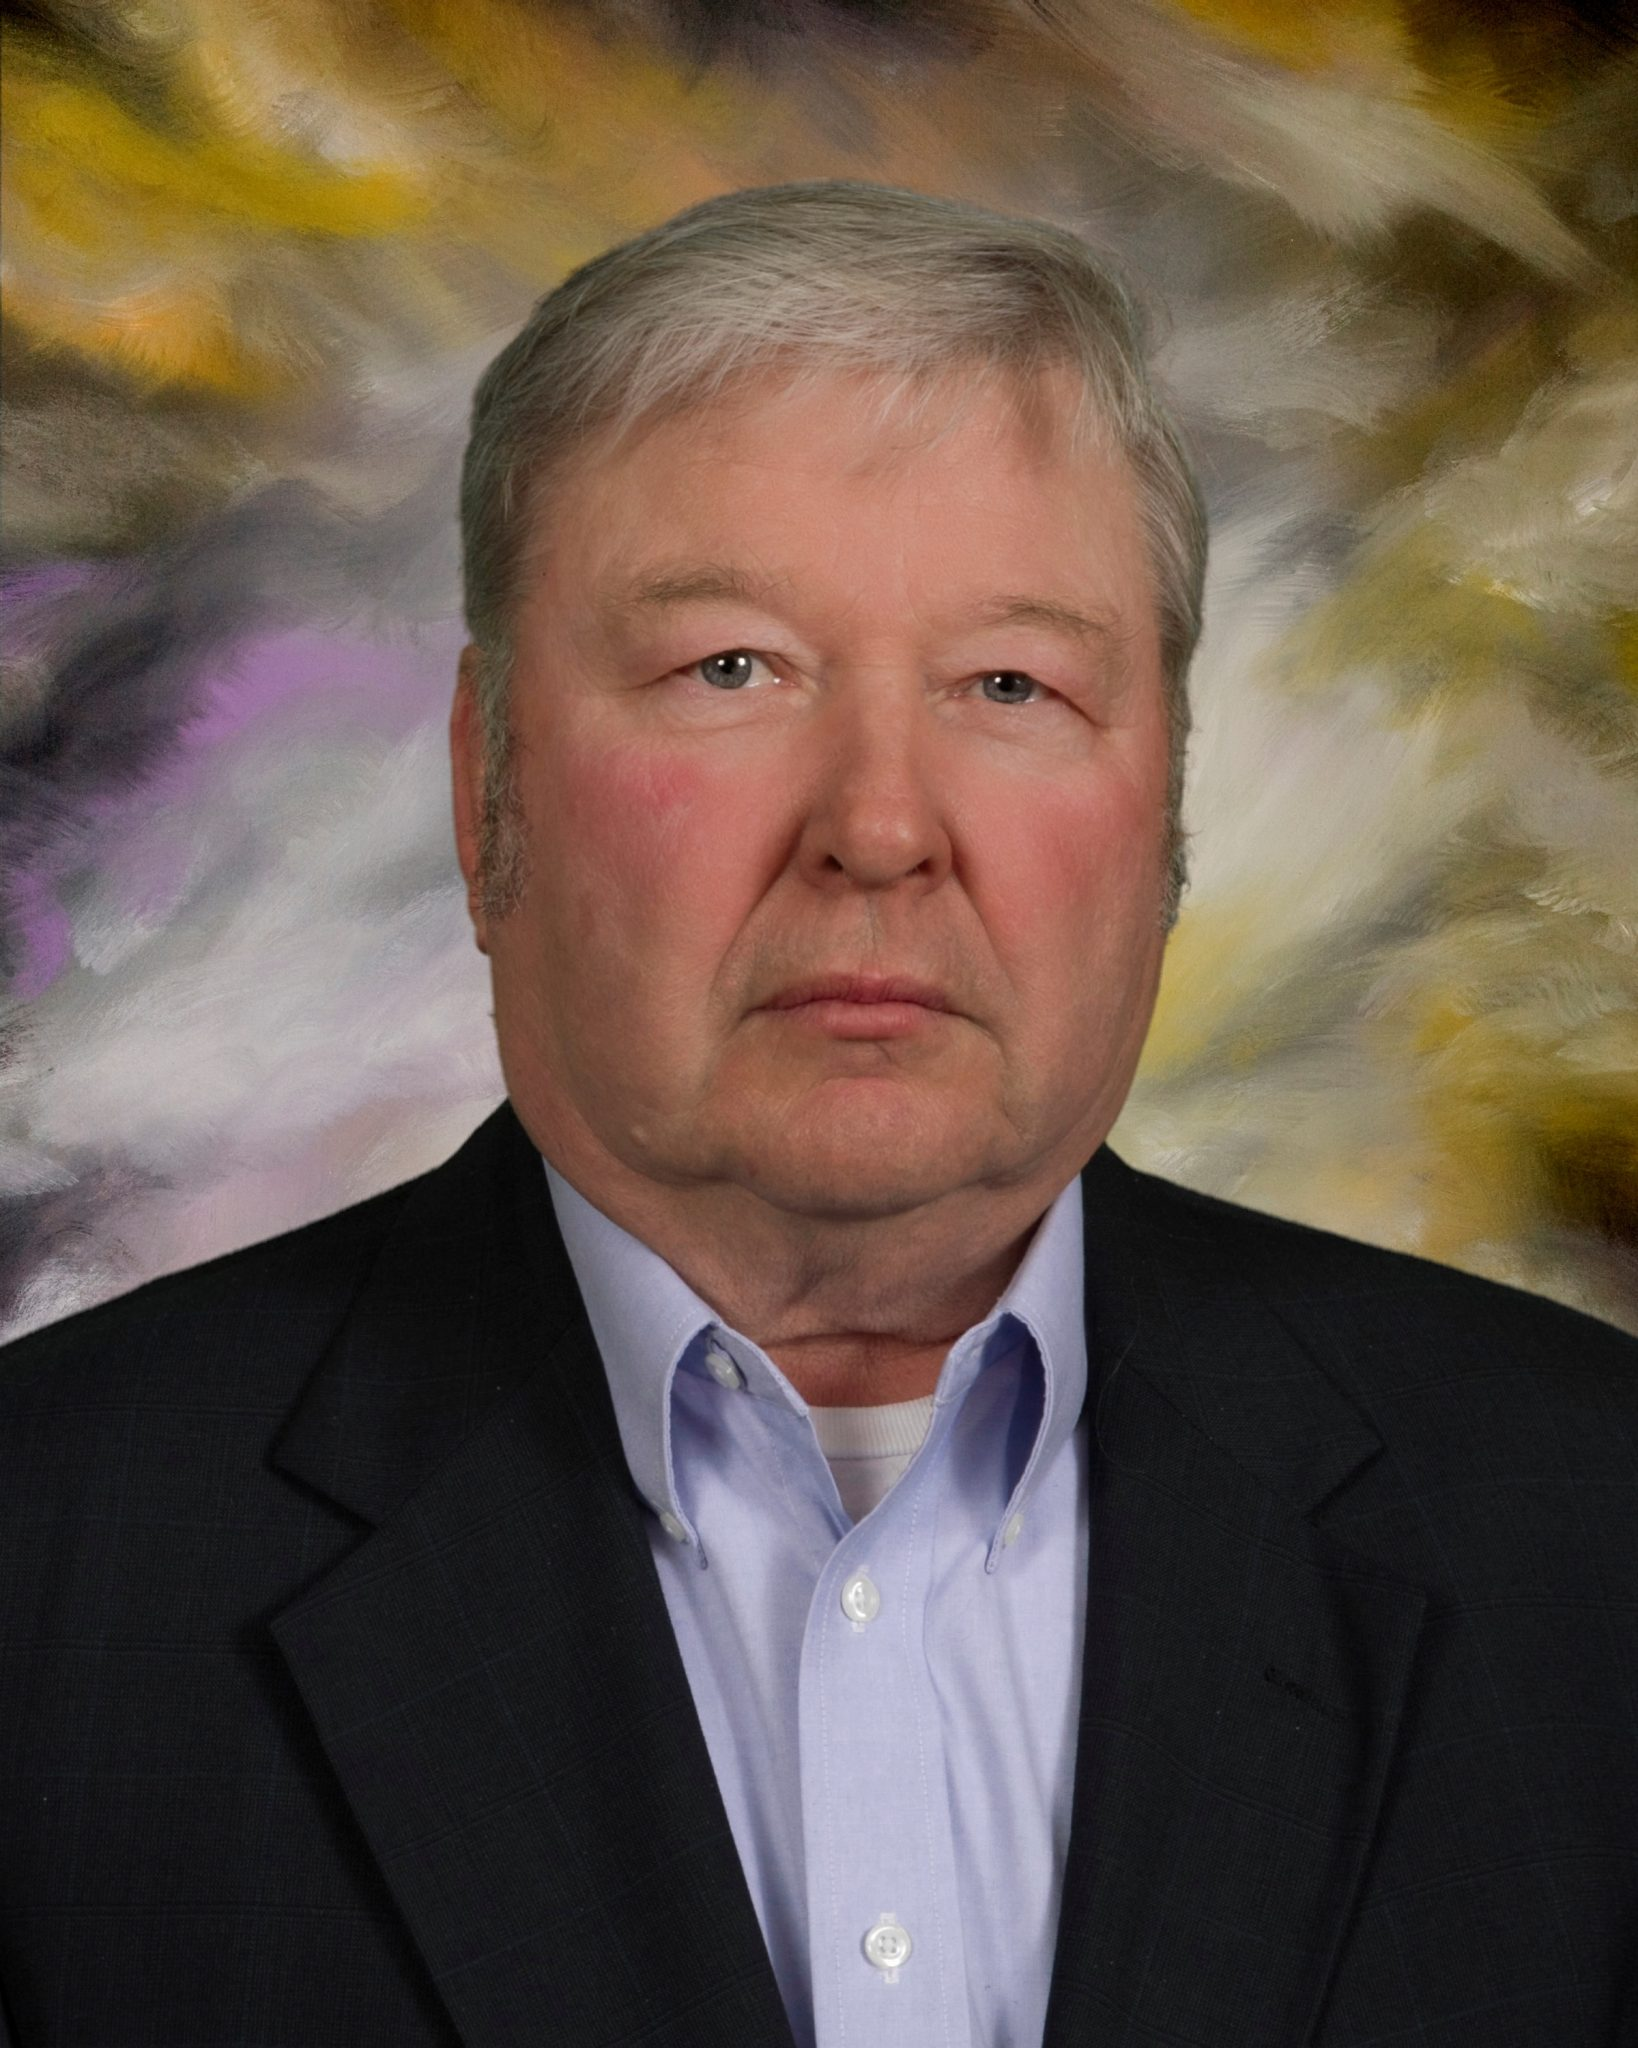 professional photo of robert loukus